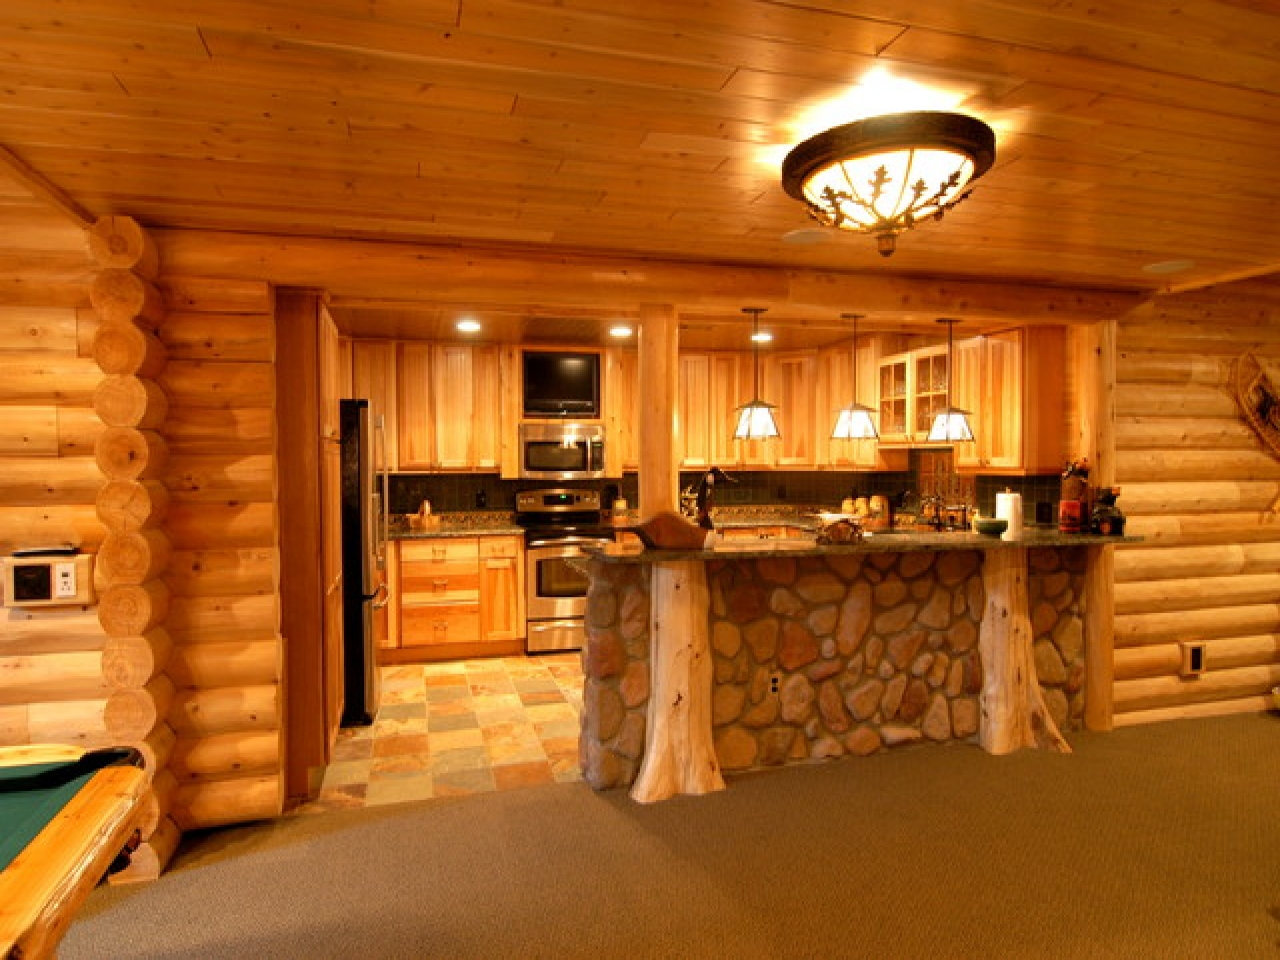 Log cabin interior design basement luxury log cabin - Interior pictures of small log cabins ...